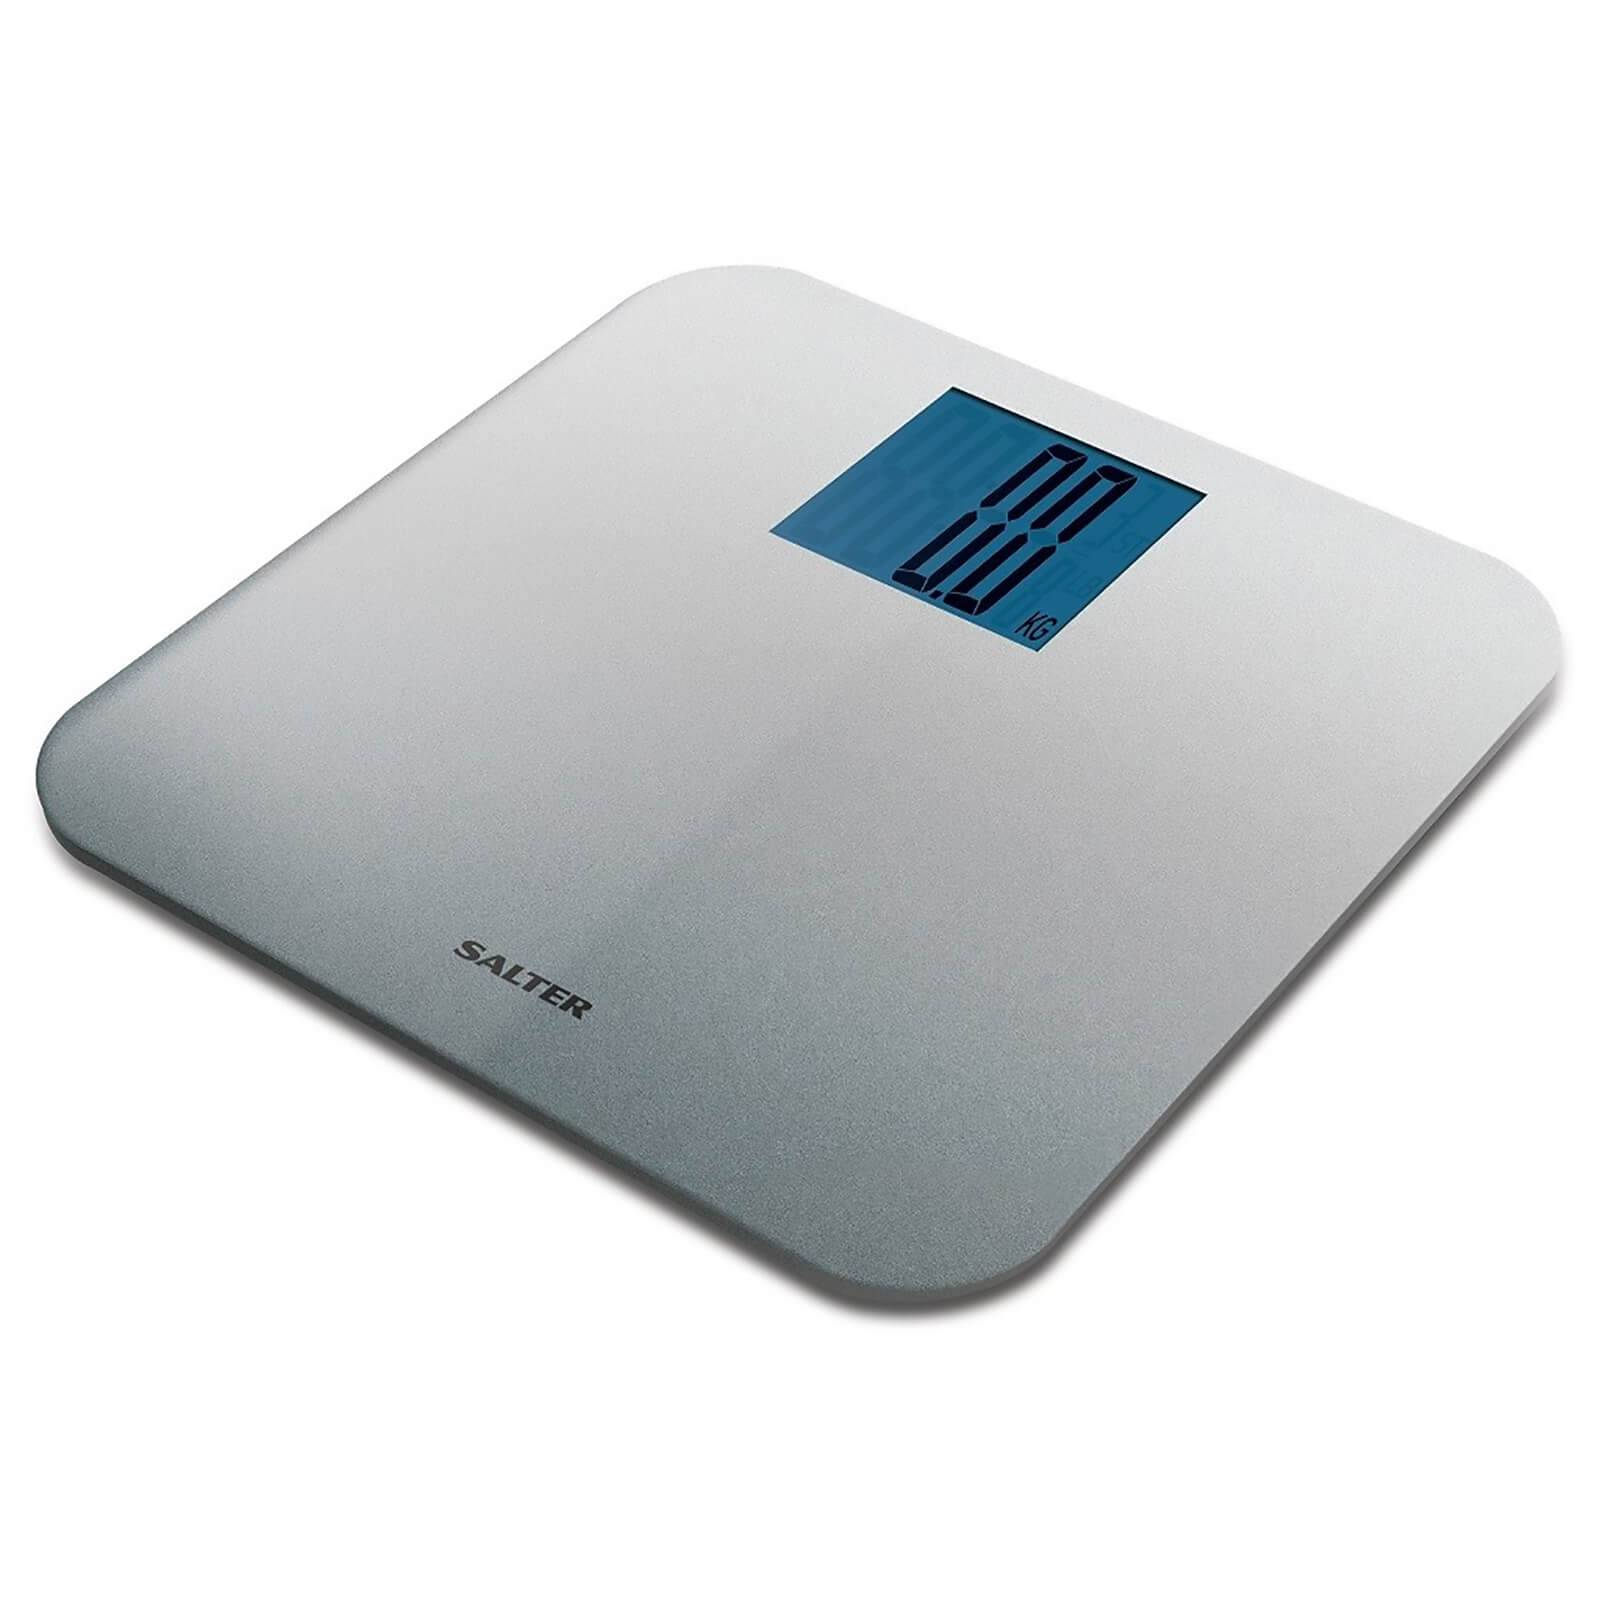 Salter Max Electronic Bathroom Scale - Silver